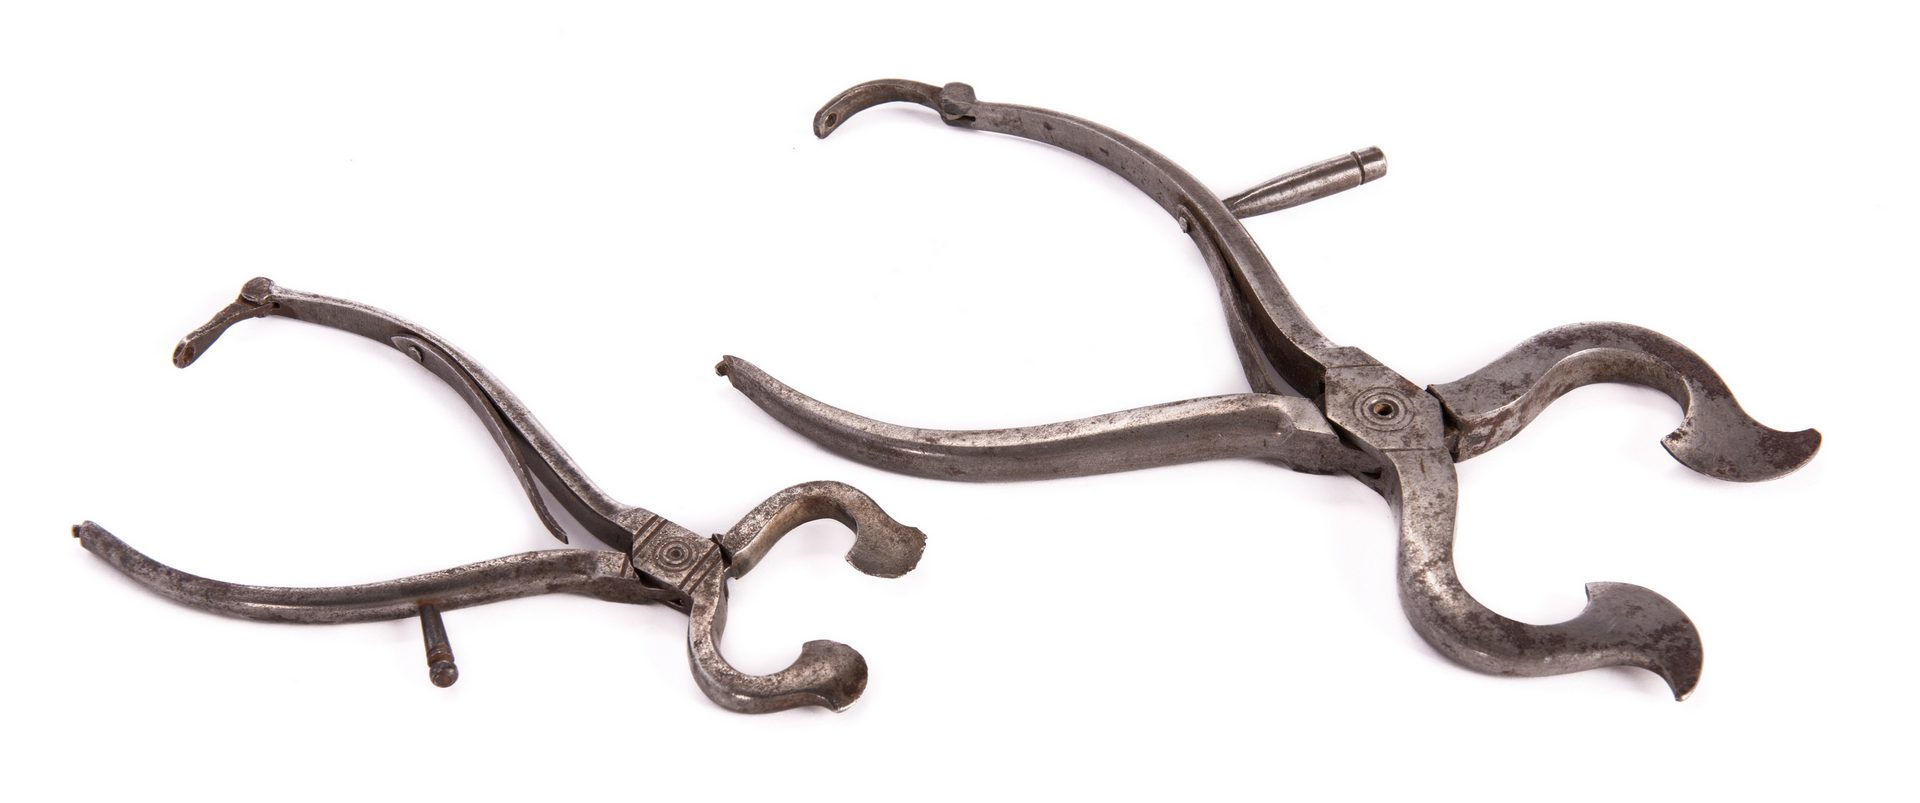 Lot 92: 2 Hand-Wrought Iron Sugar Nippers